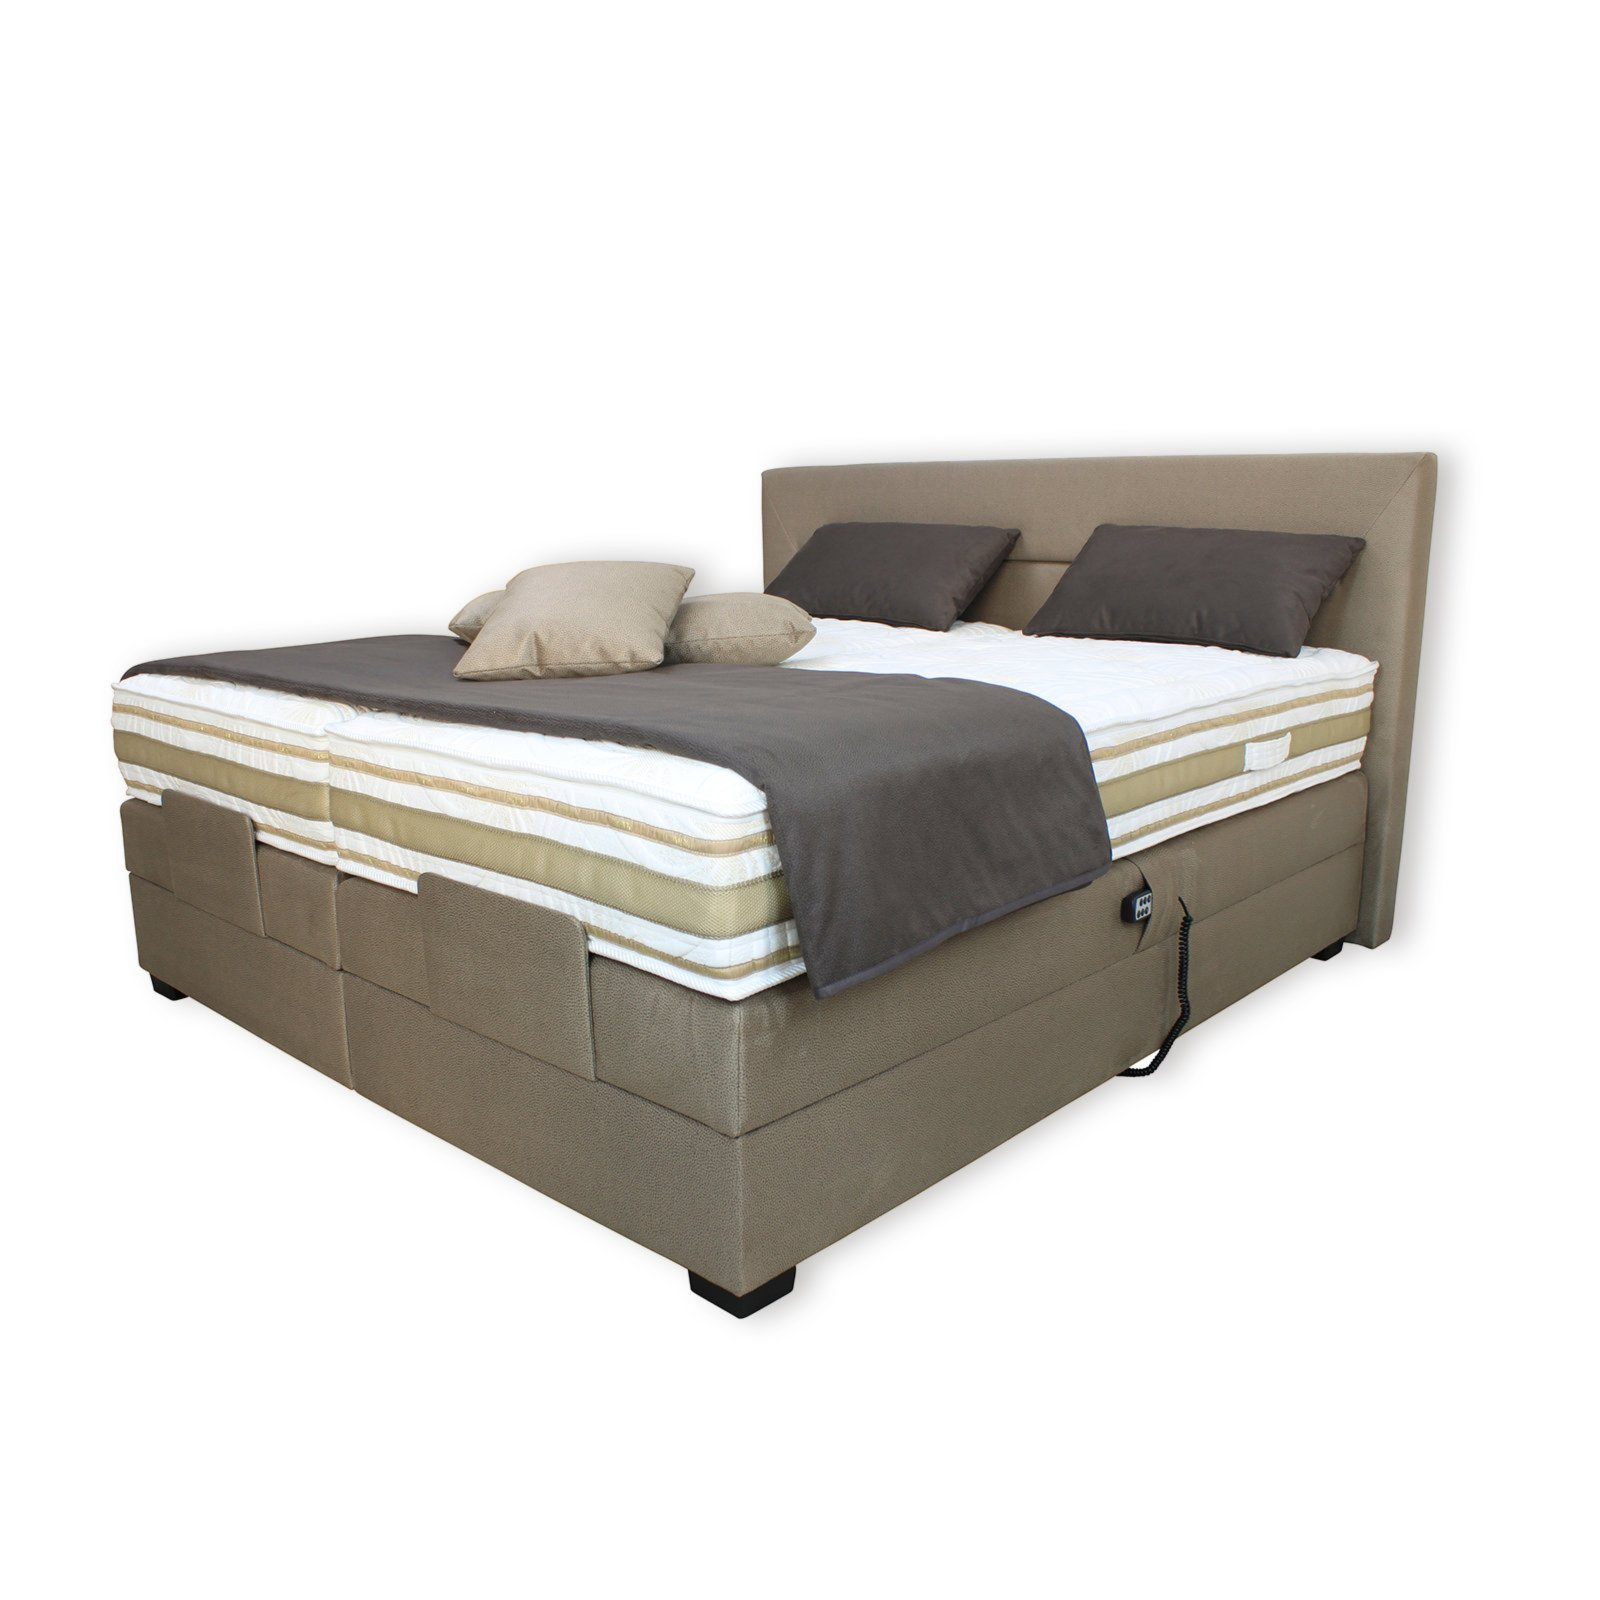 boxspringbett mit motor test boxspringbett mit motor test. Black Bedroom Furniture Sets. Home Design Ideas